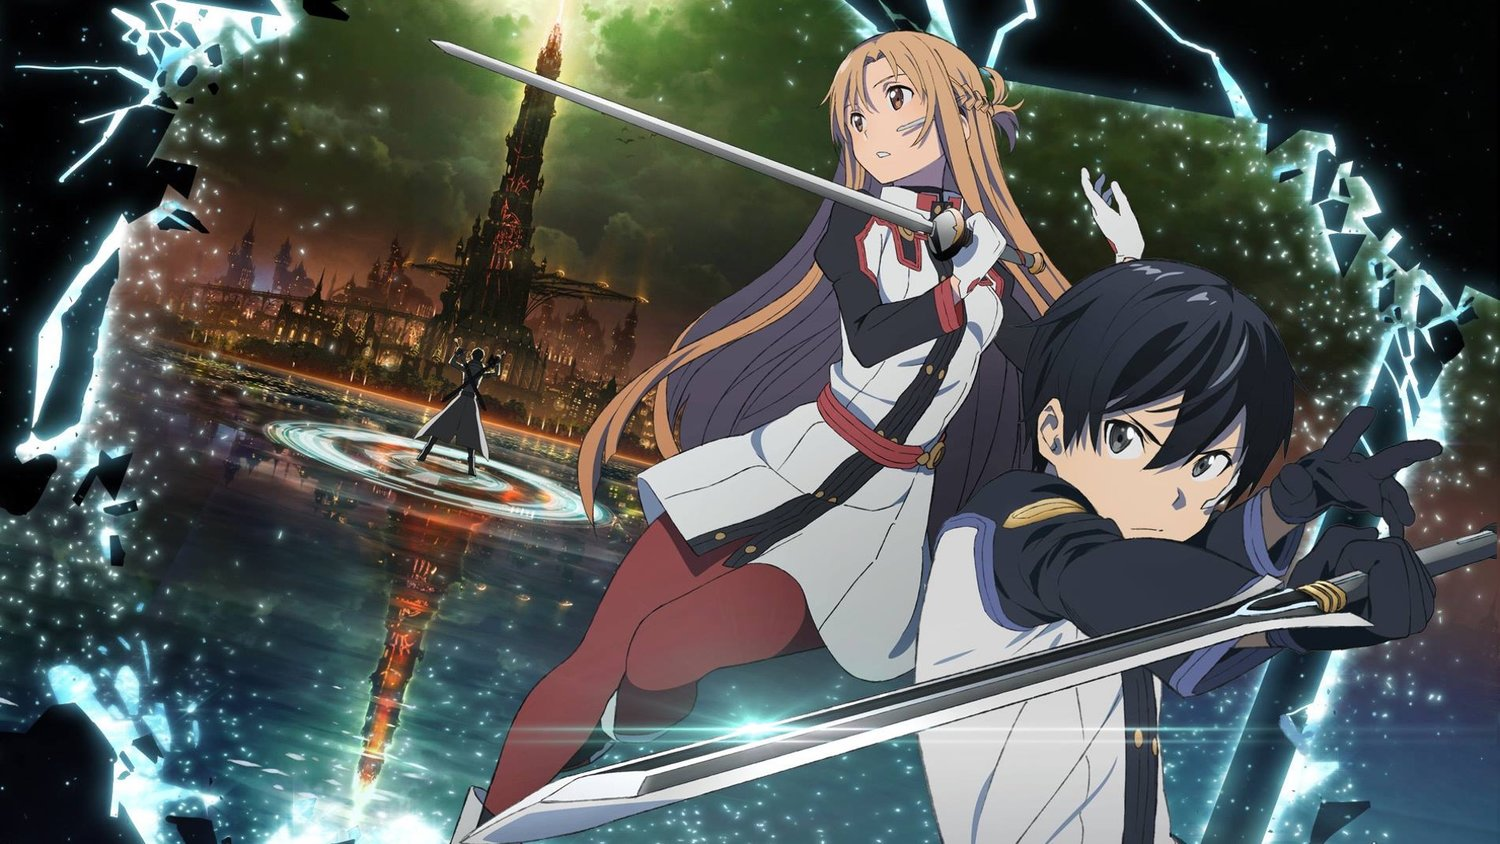 The Highly-Anticipated SWORD ART ONLINE Movie Gets Two Awesome New Trailers